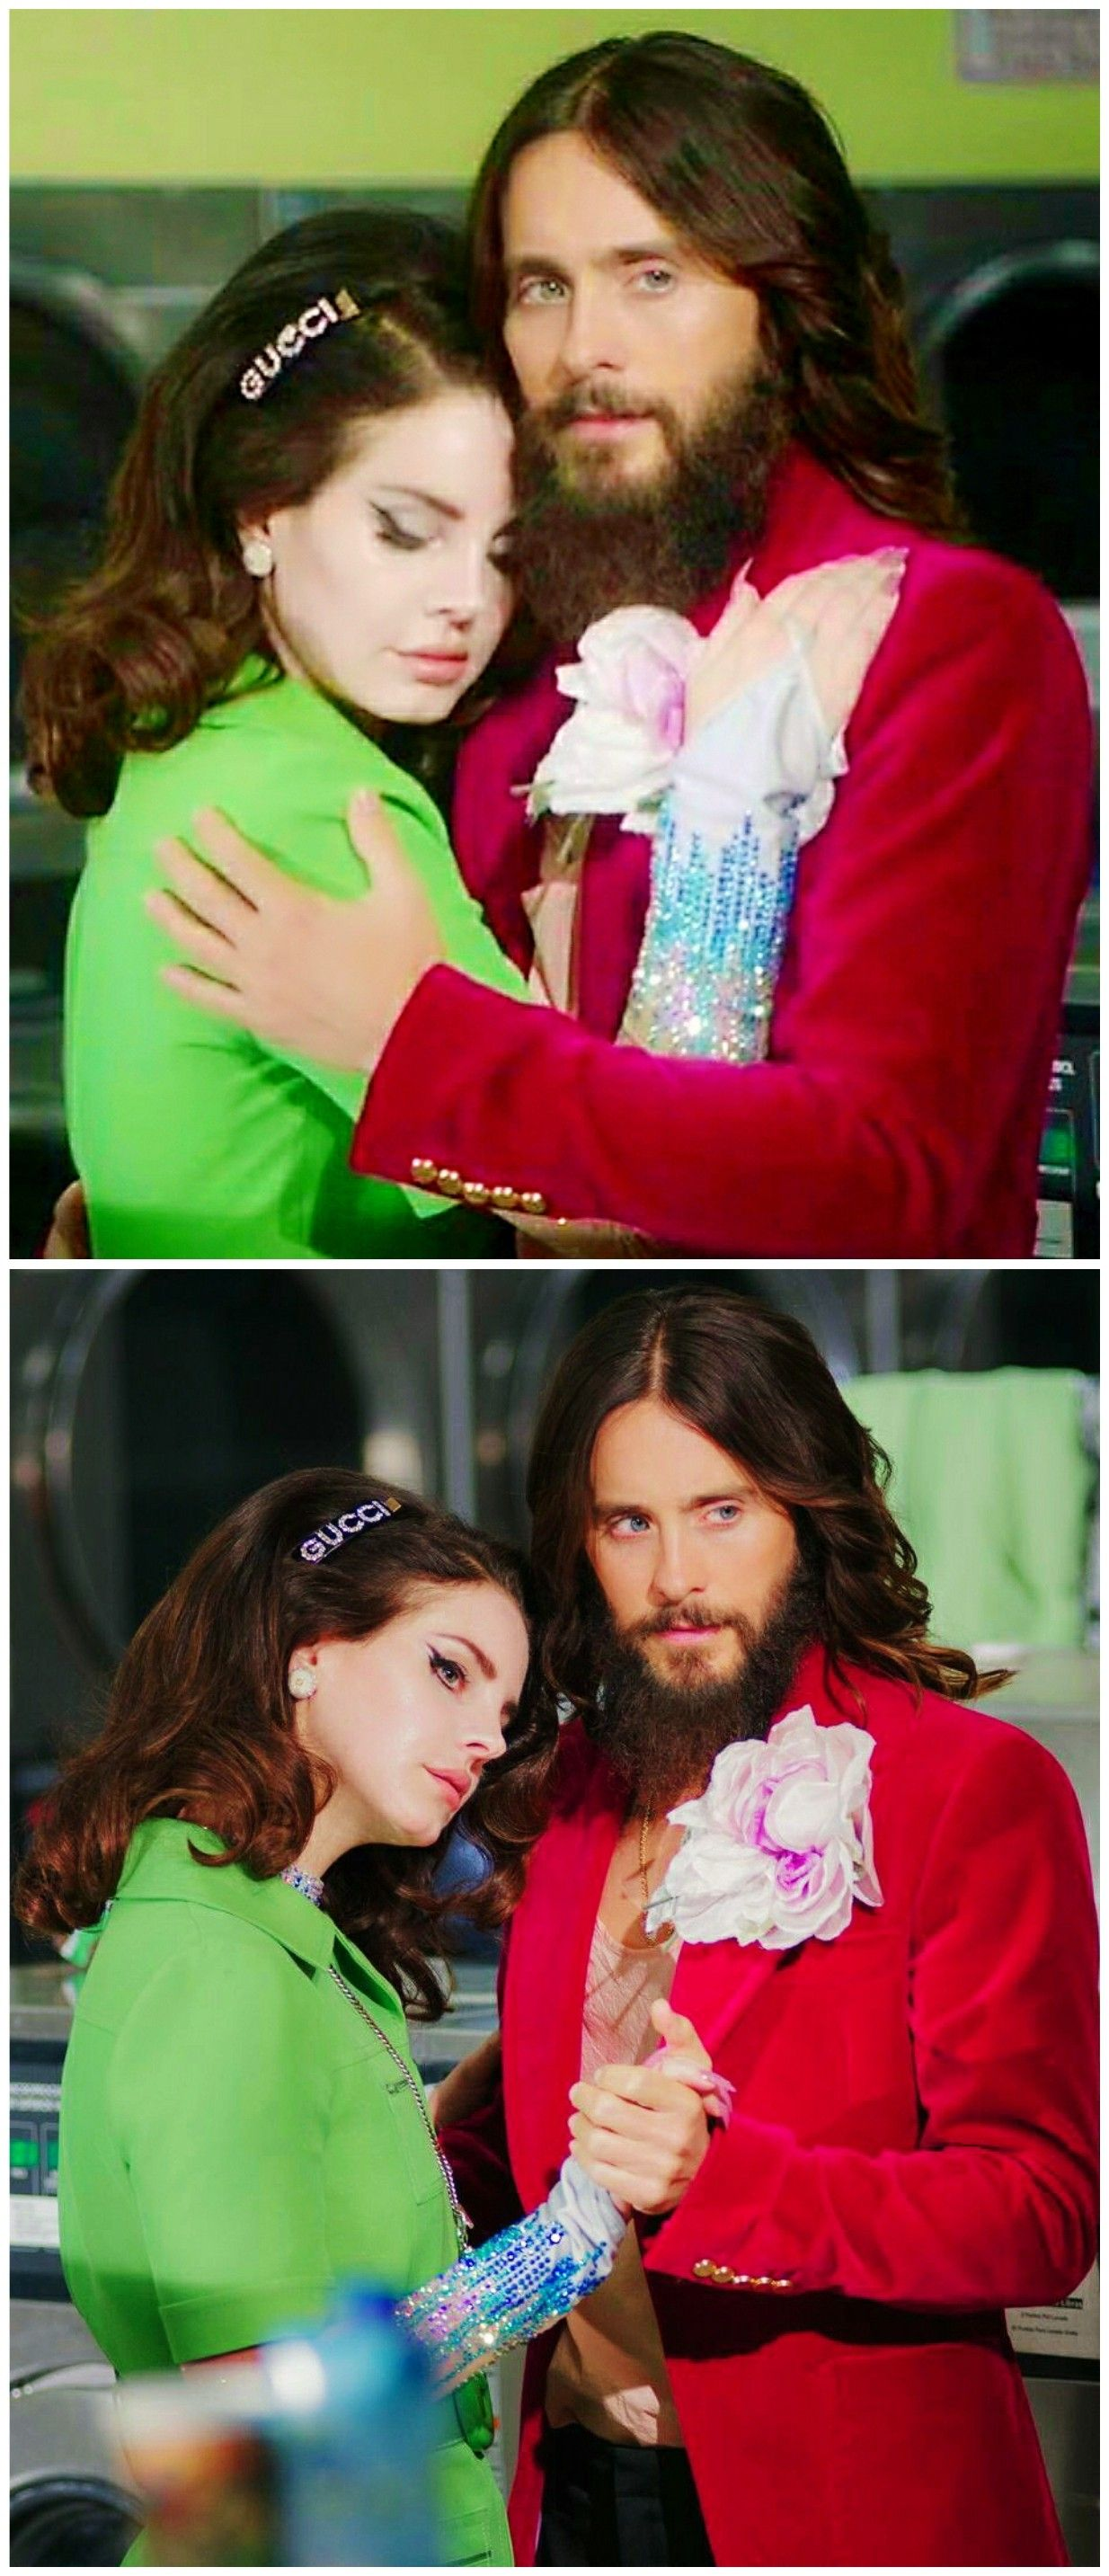 Lana Del Rey And Jared Leto In The Advertising Campaign For The New Gucci Guilty Fragrance Ldr Brooklyn Baby Lana Del Rey Jared Leto Hair Lana Del Rey